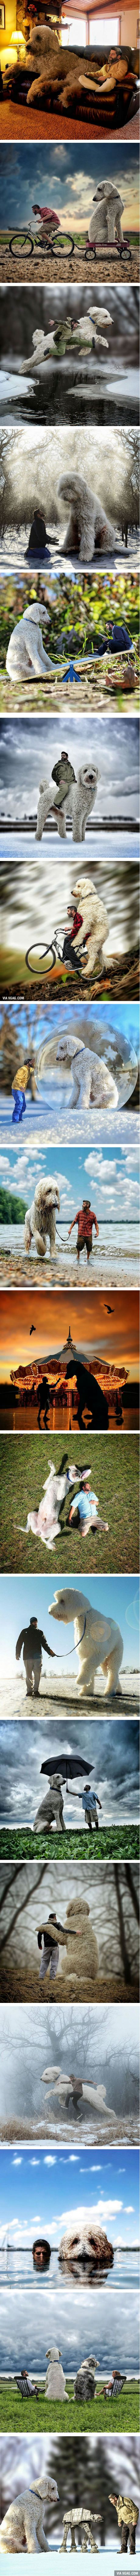 The Best Giant Dogs Ideas On Pinterest Giant Dog Breeds Big - Guy uses photoshop to turn his miniature dog into a giant